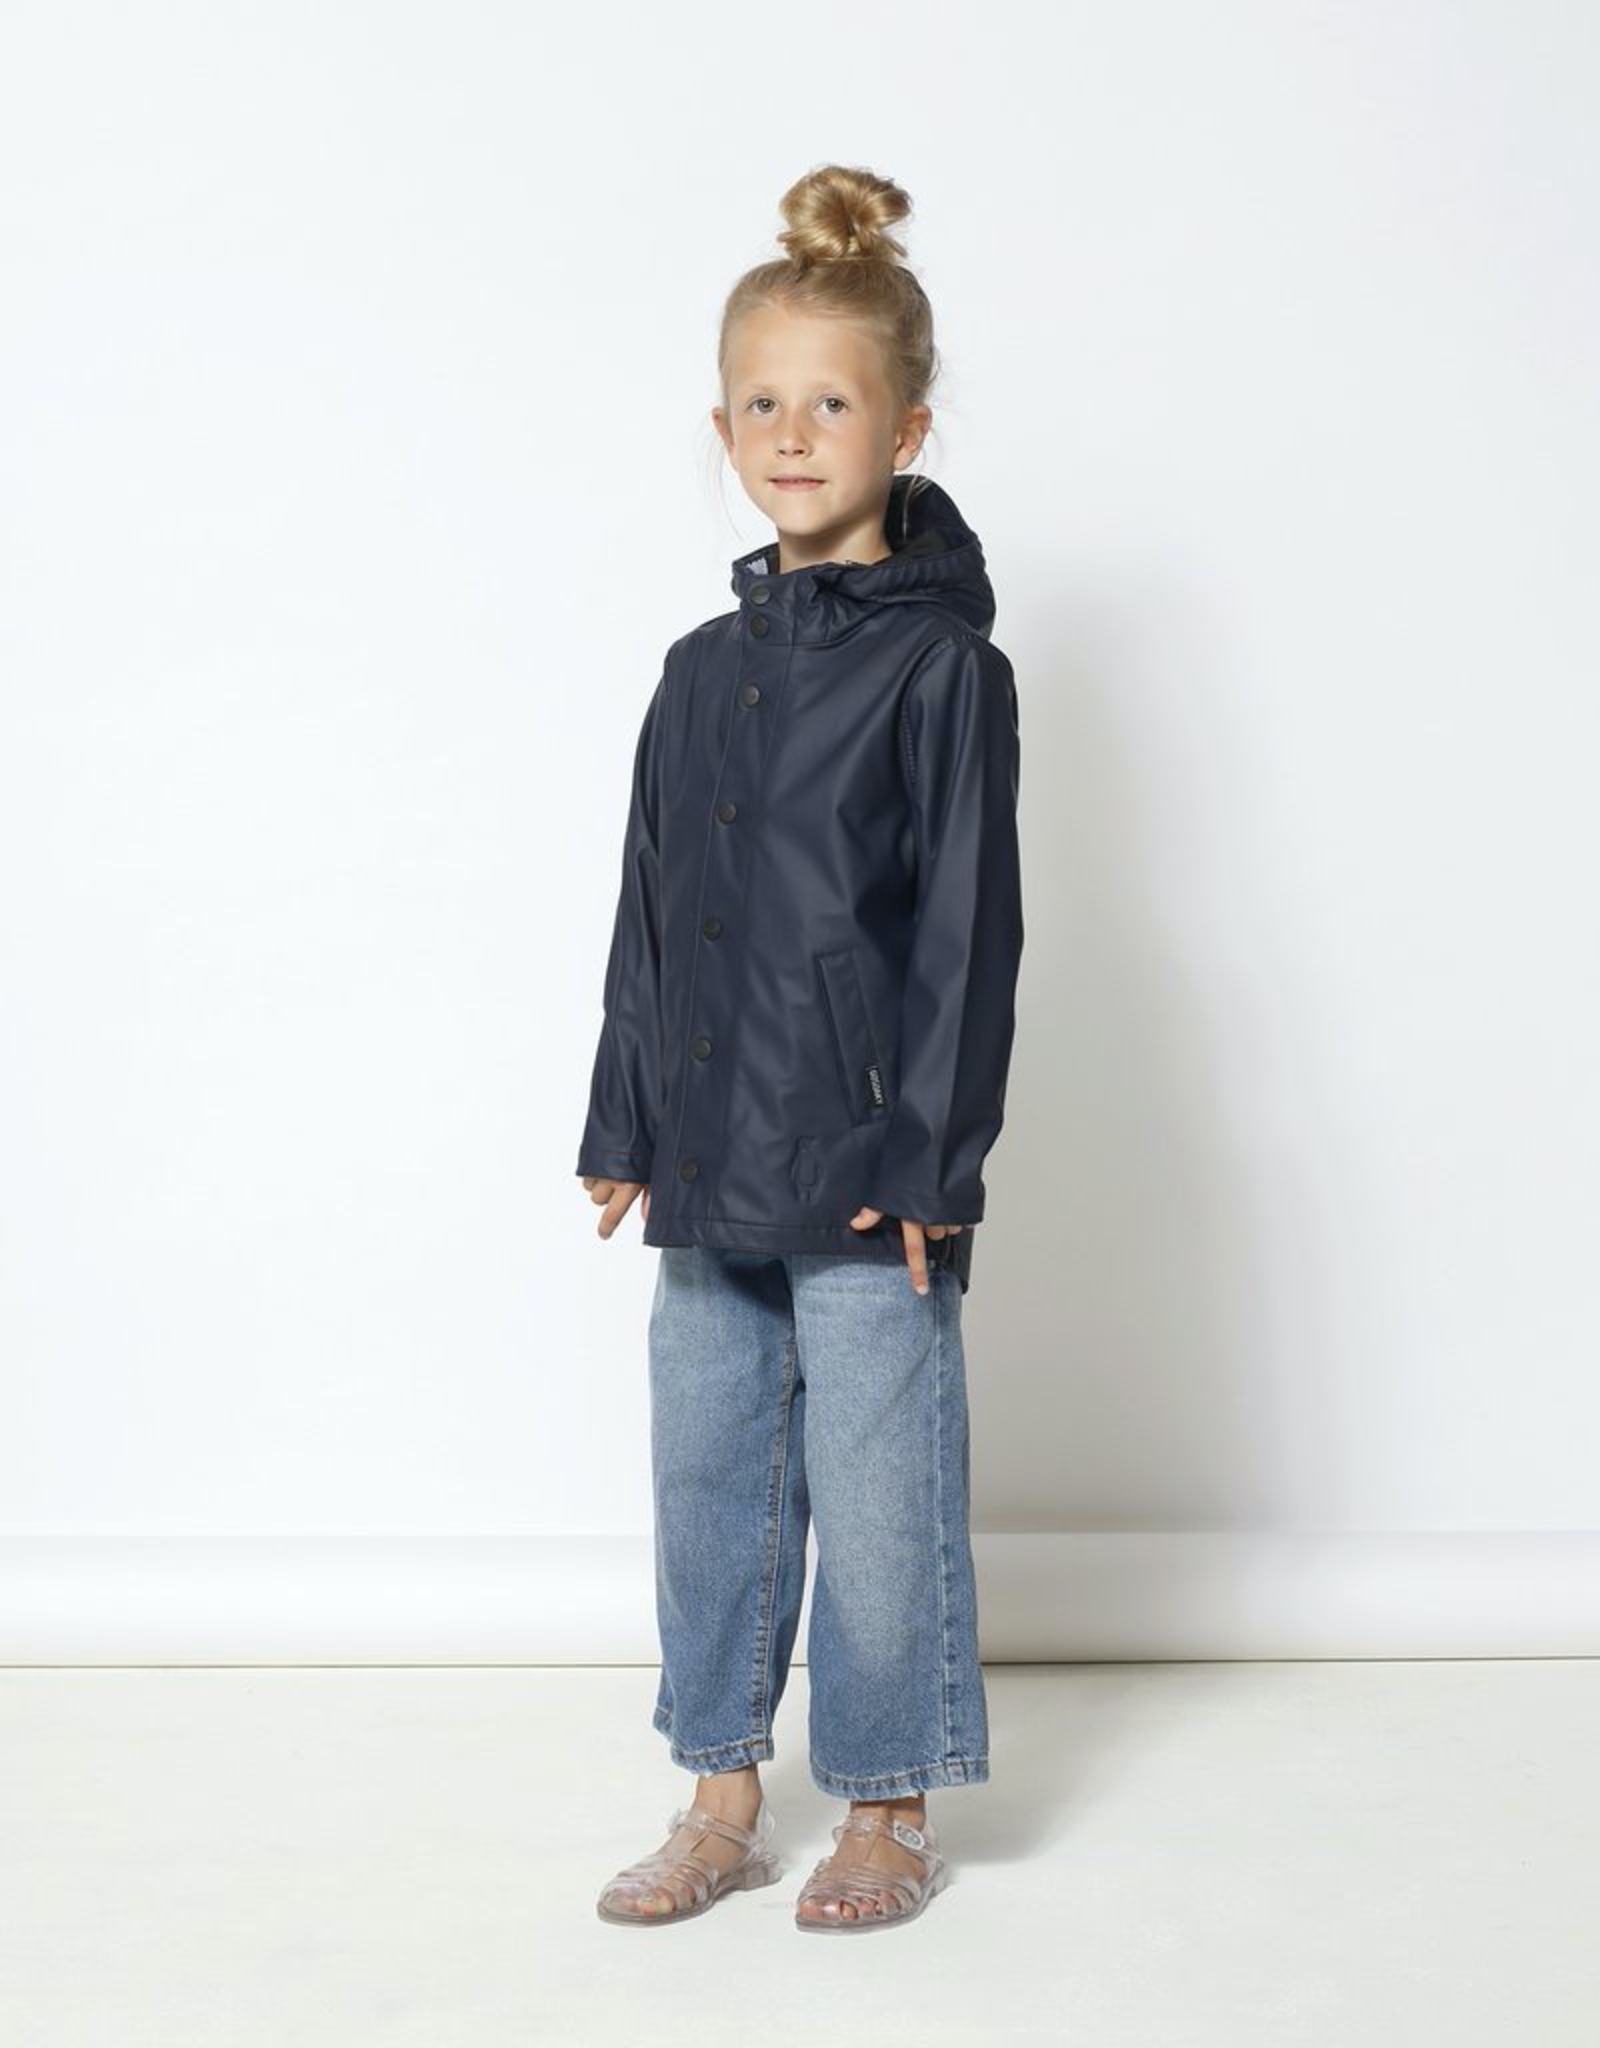 Go Soaky Elephant Man Raincoat in Indigo